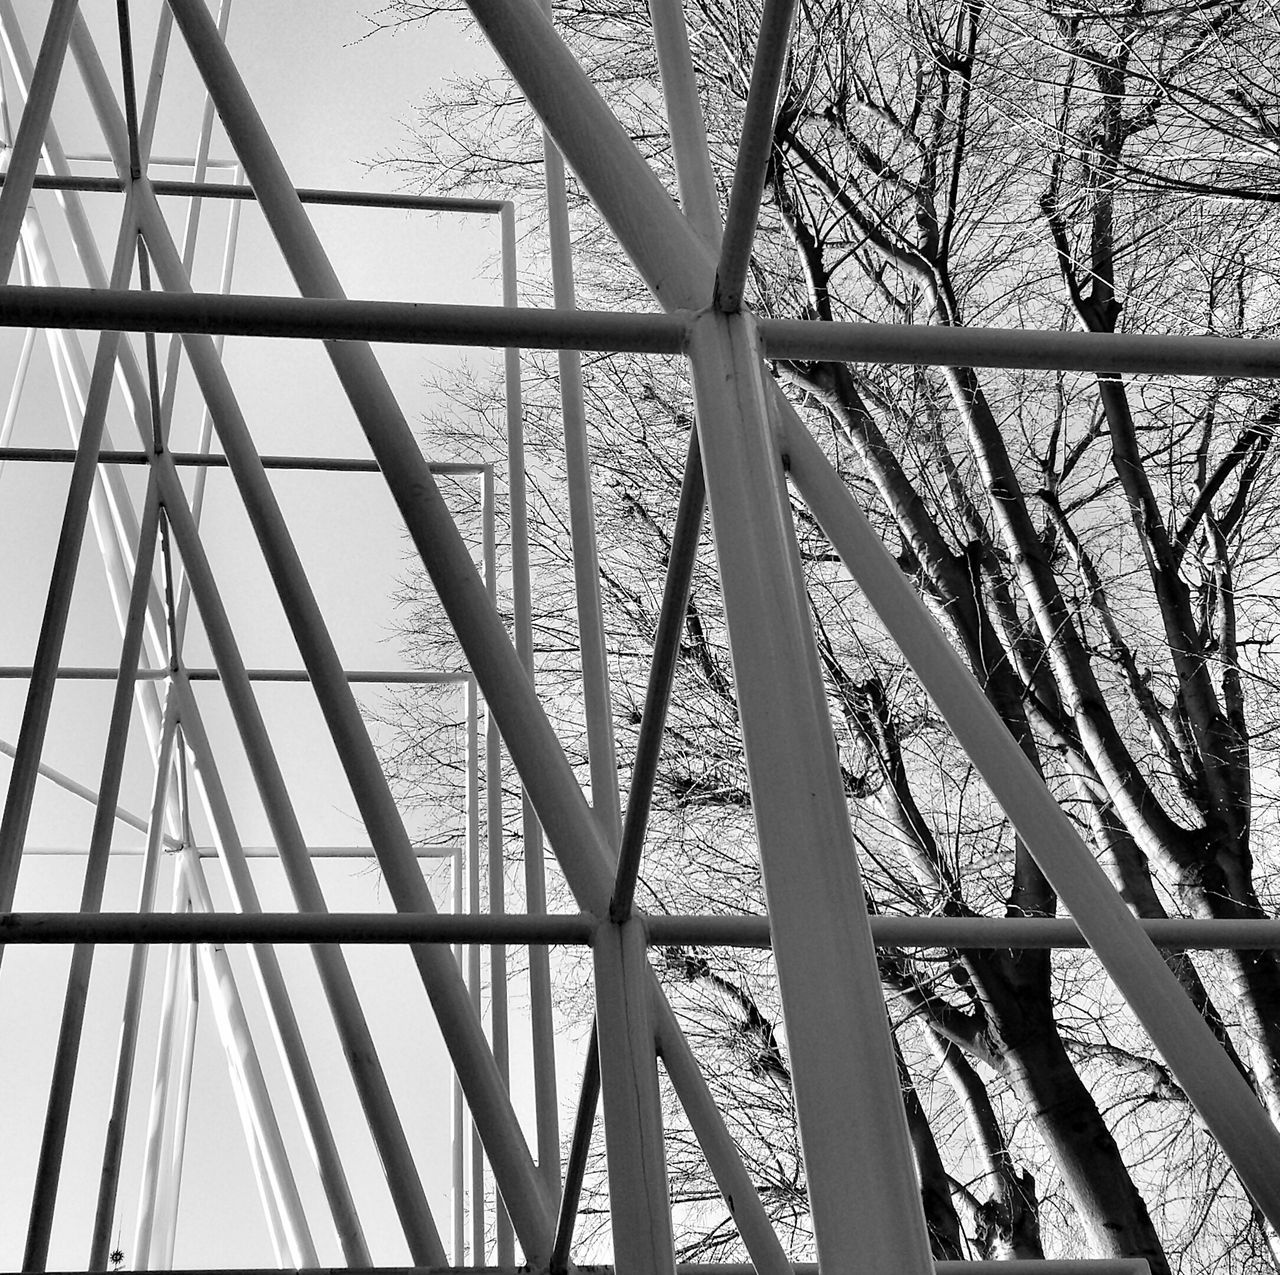 Low Angle View Of Steel Poles Against Bare Trees